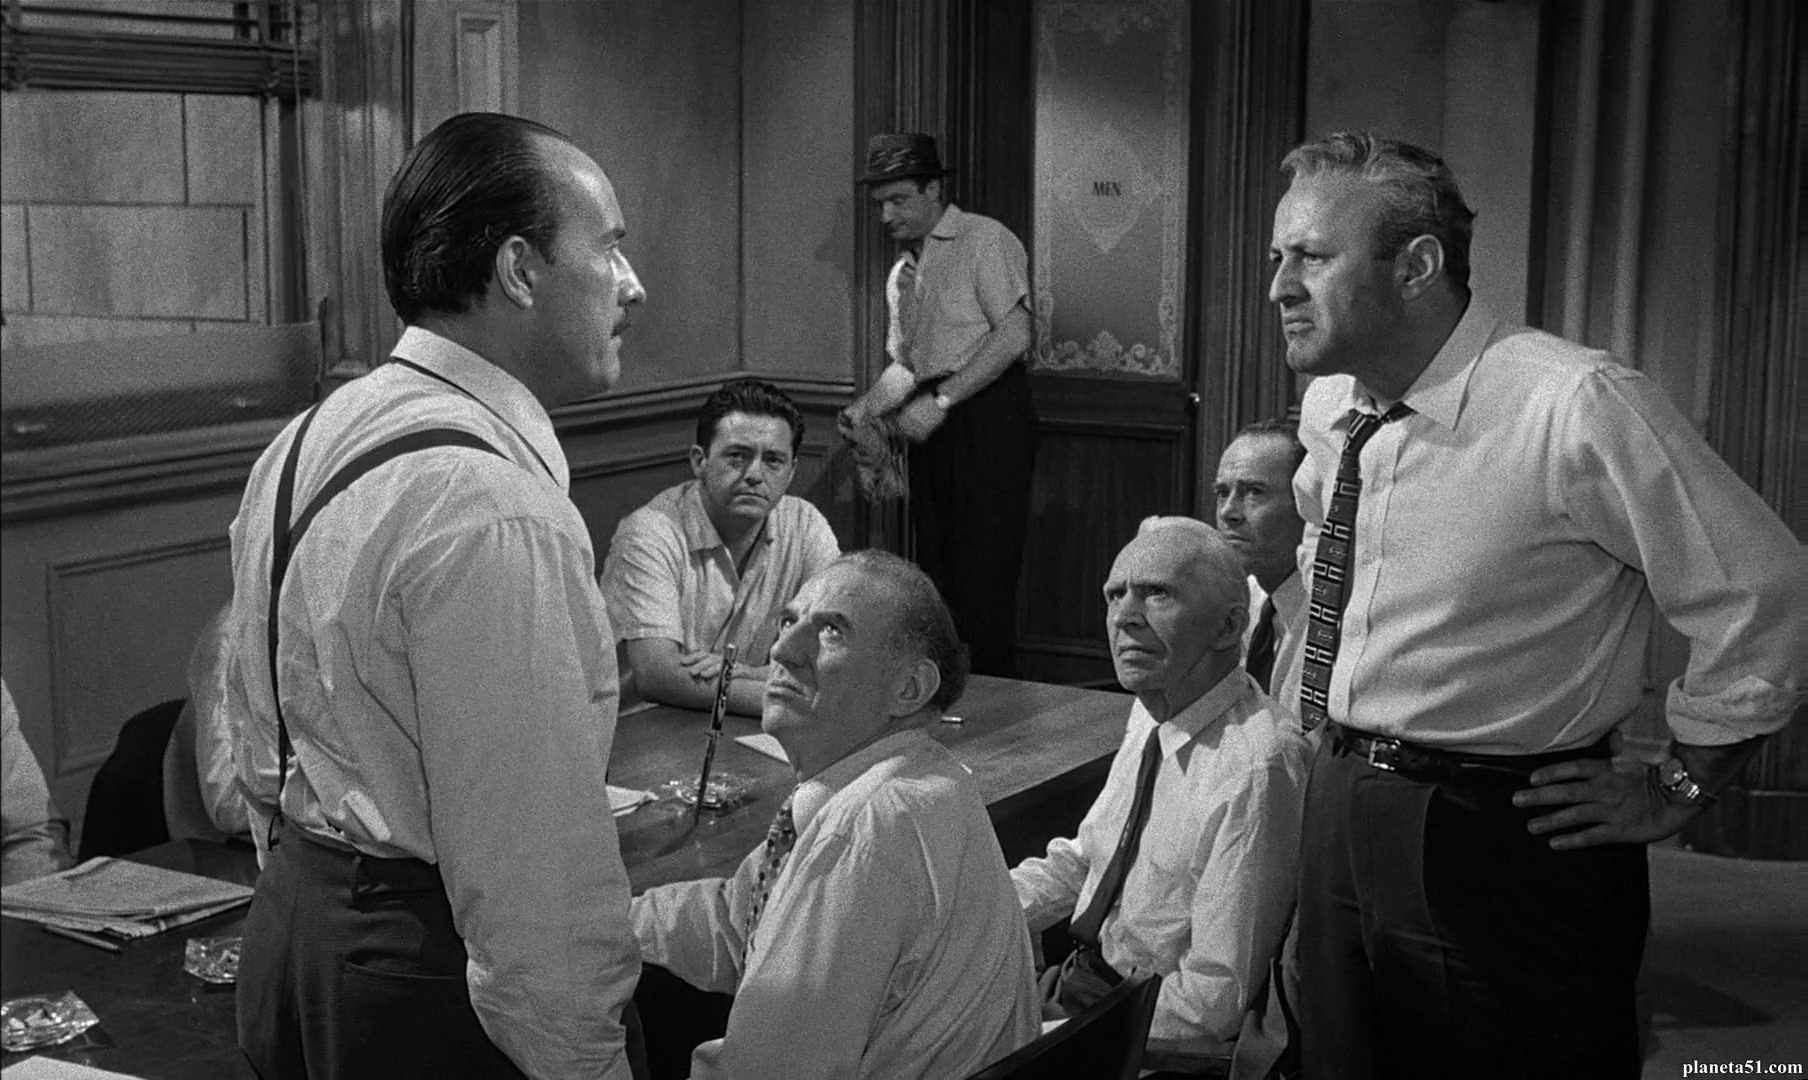 bests points of sidney lumets 12 angry men